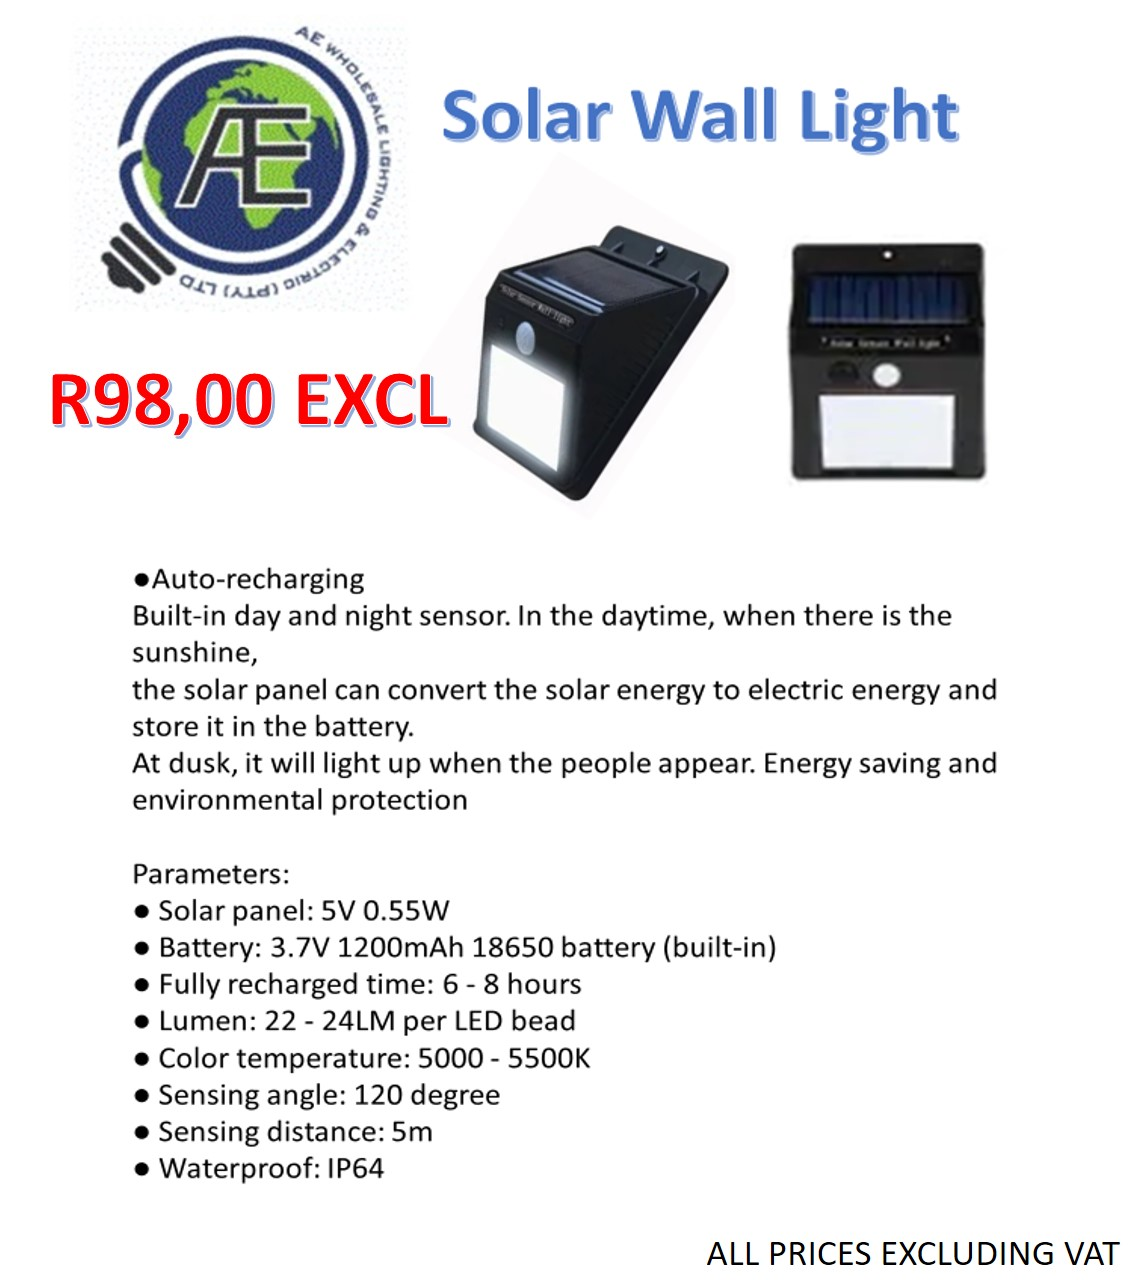 SOLAR PRODUCTS AND LED LIGHTS